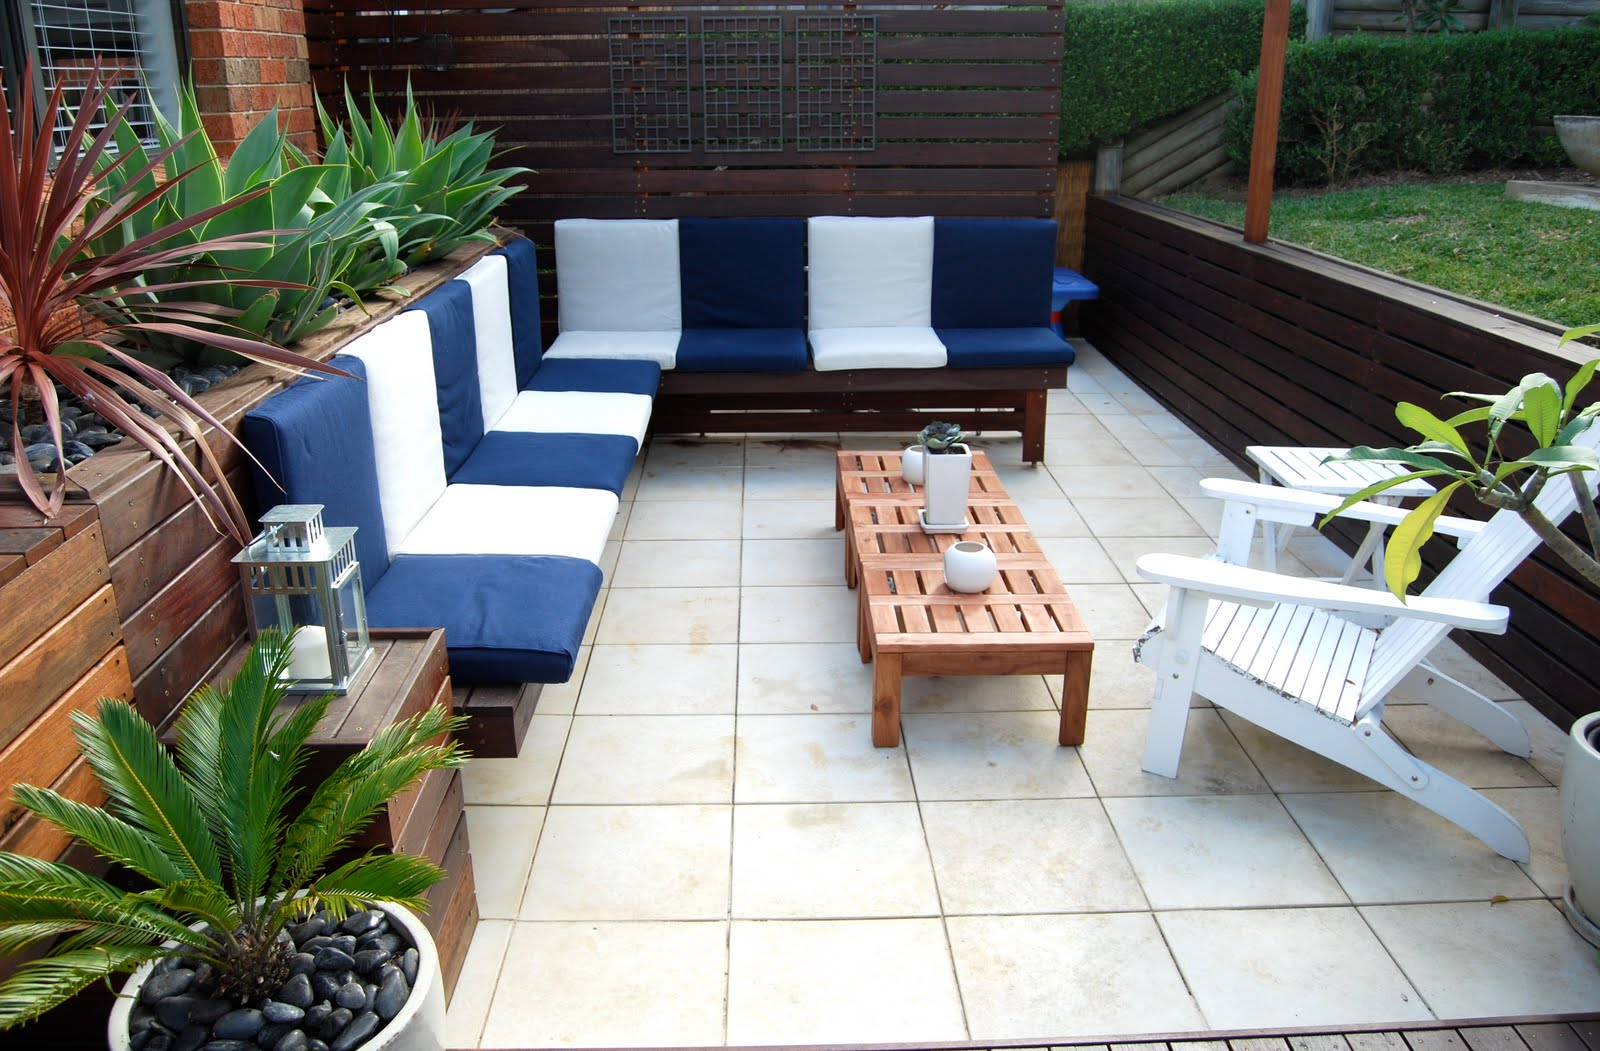 Gorgeous Ikea Lawn Furniture Idea On Dull White Flooring Idea With White  Blue Sectional Seating And